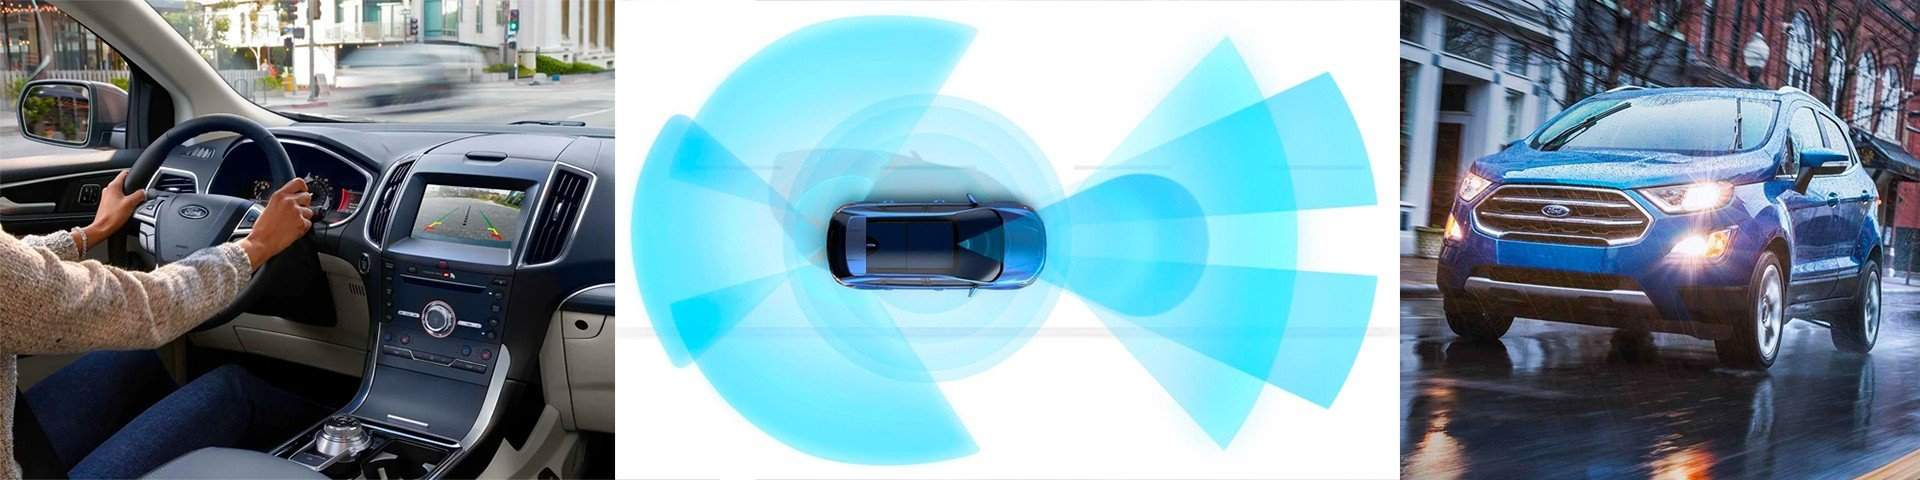 Ford driver assist technology